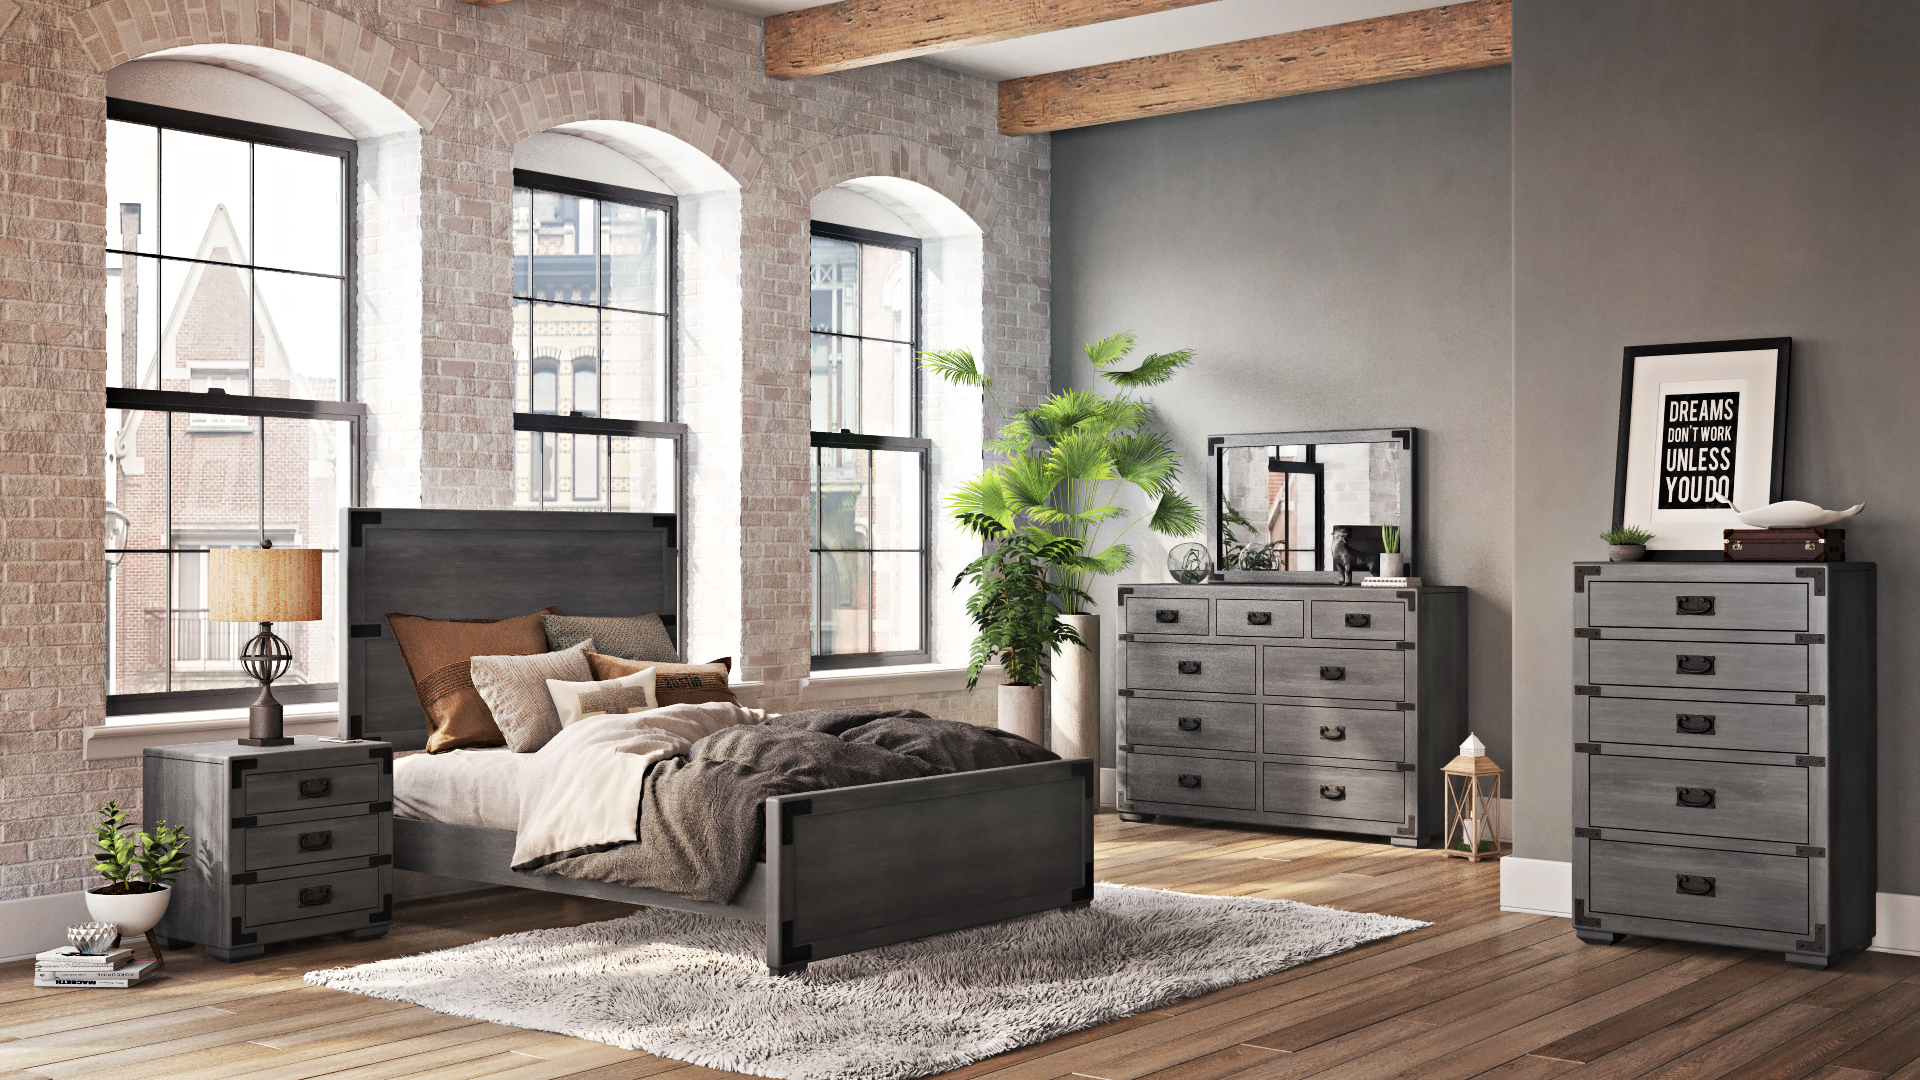 Bedroom Furniture Set for Product Advertising